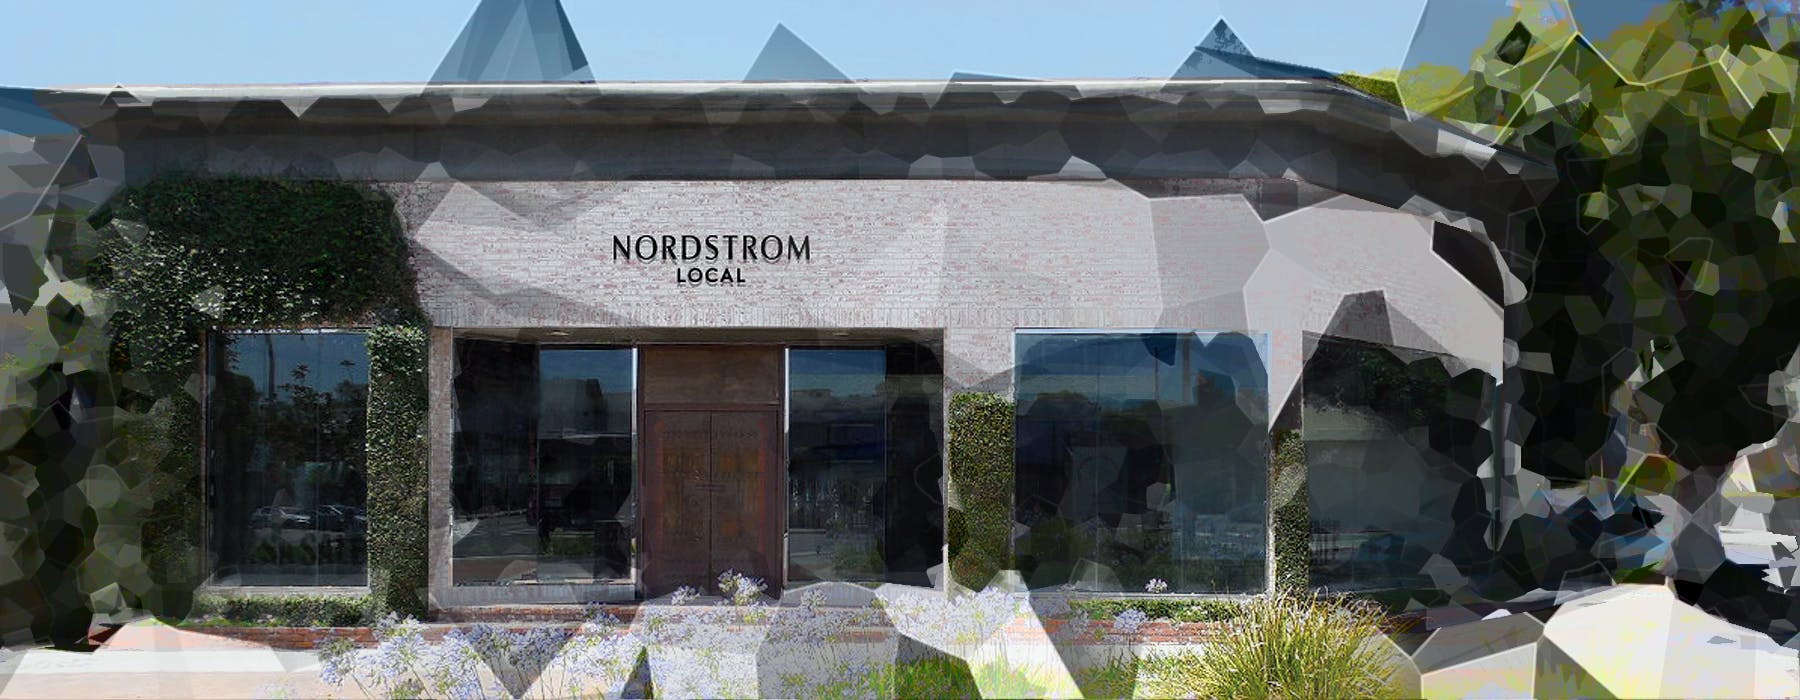 The art of the possible: Nordstrom Local